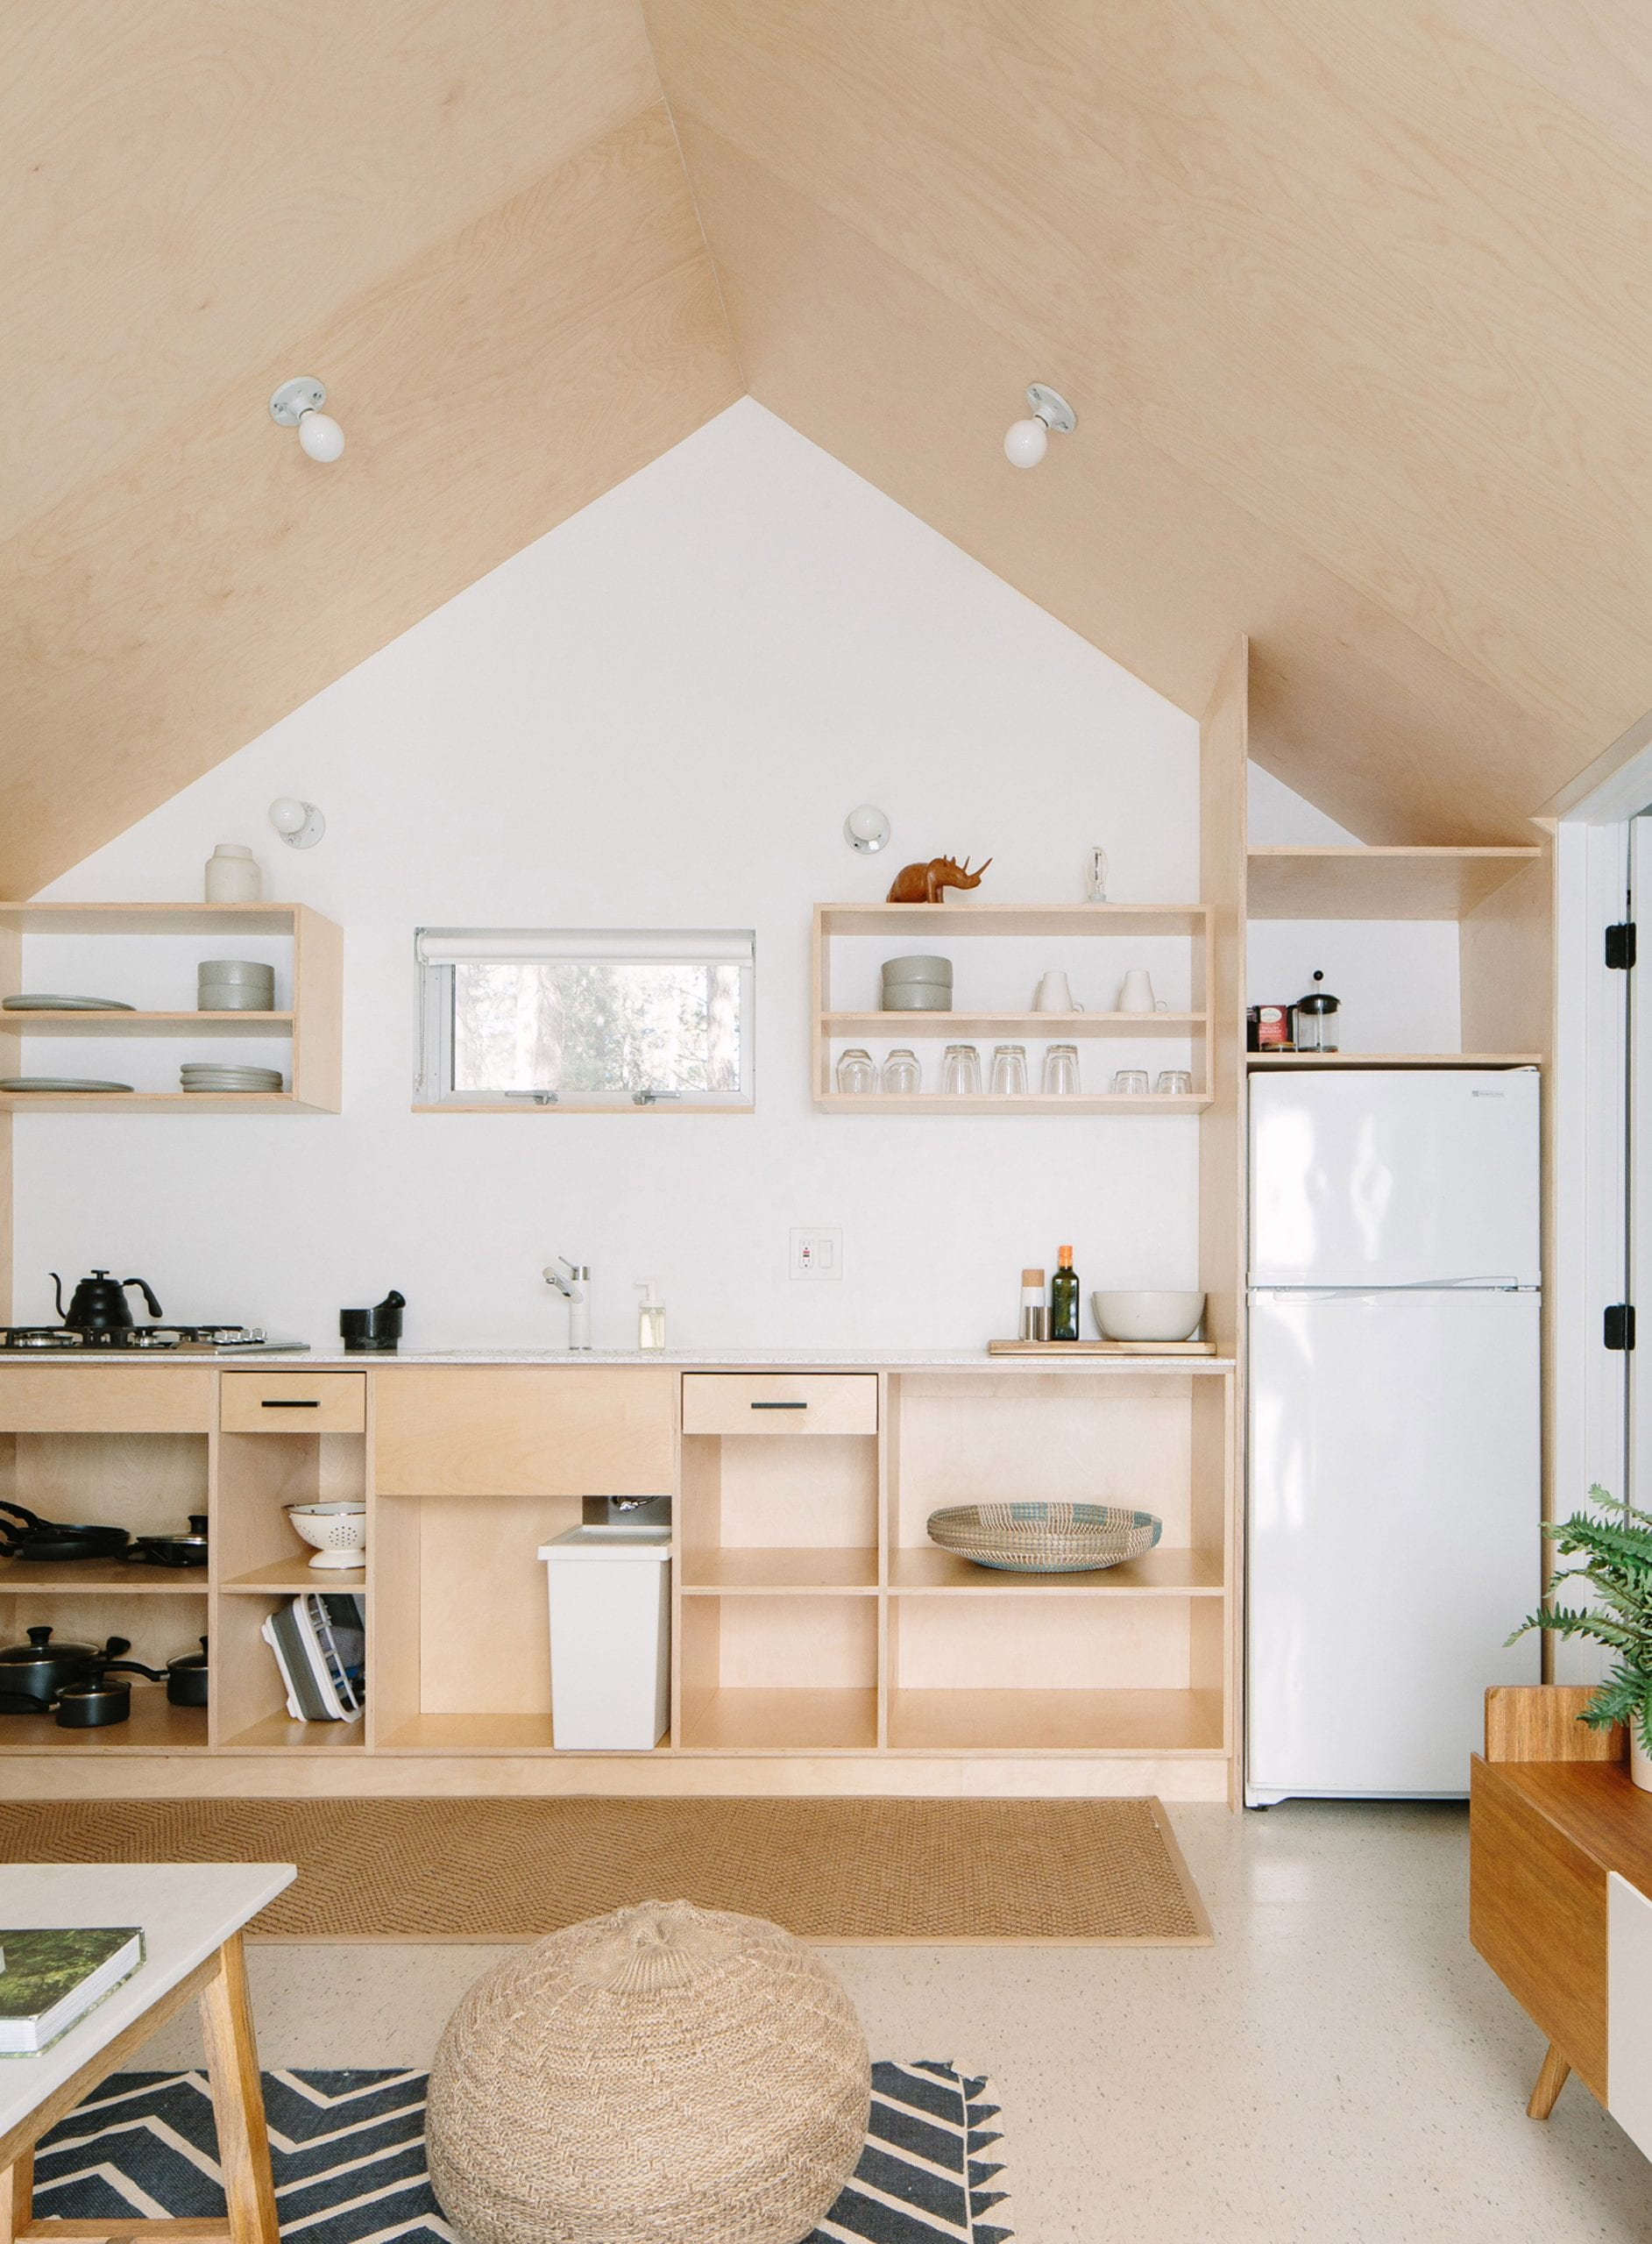 Plywood one-wall kitchen by Sheet/RockLA